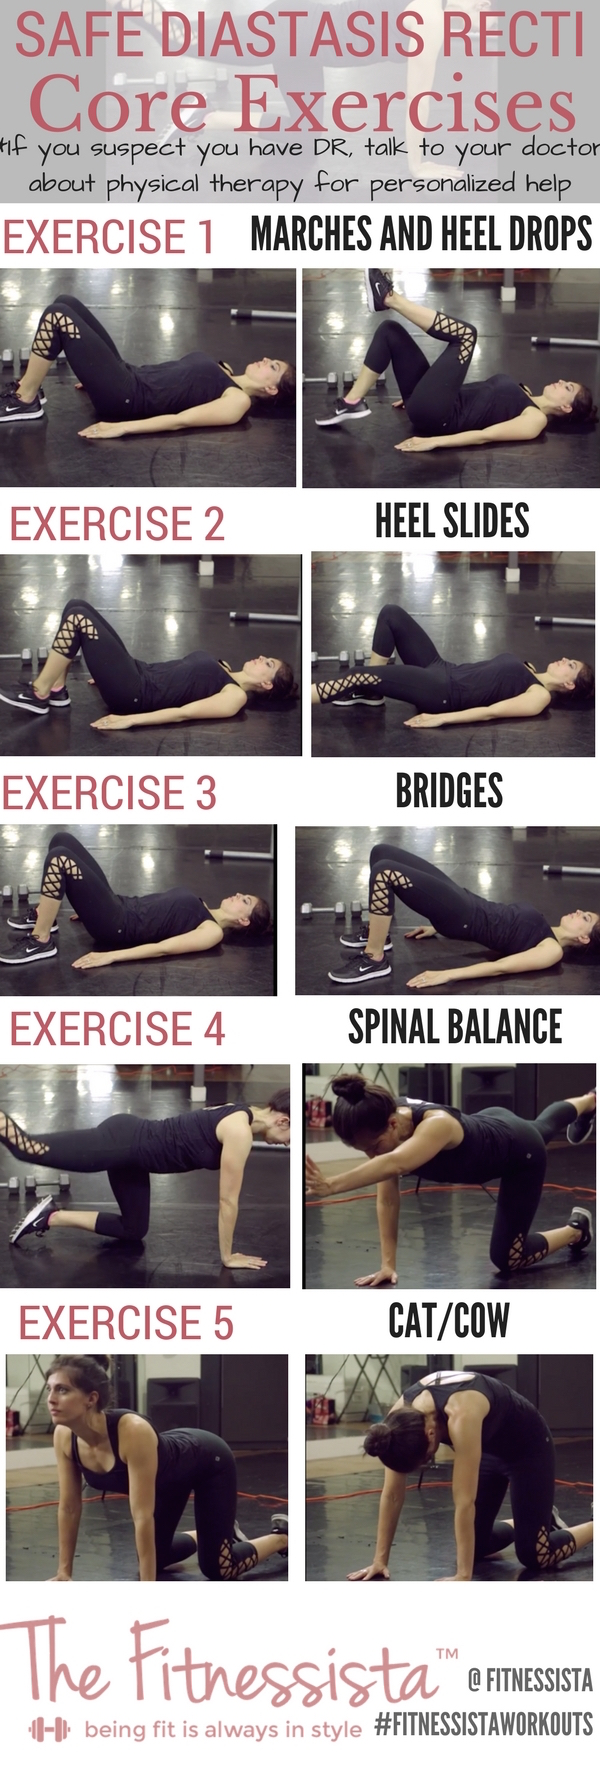 Tips for safe workouts if you have diastasis recti, or abnormal ab separation after pregnancy. Strengthen your core with these safe diastasis recti exercises. fitnessista.com #diastasisrecti #diastasisrectiexercises #diastasisrectiworkout